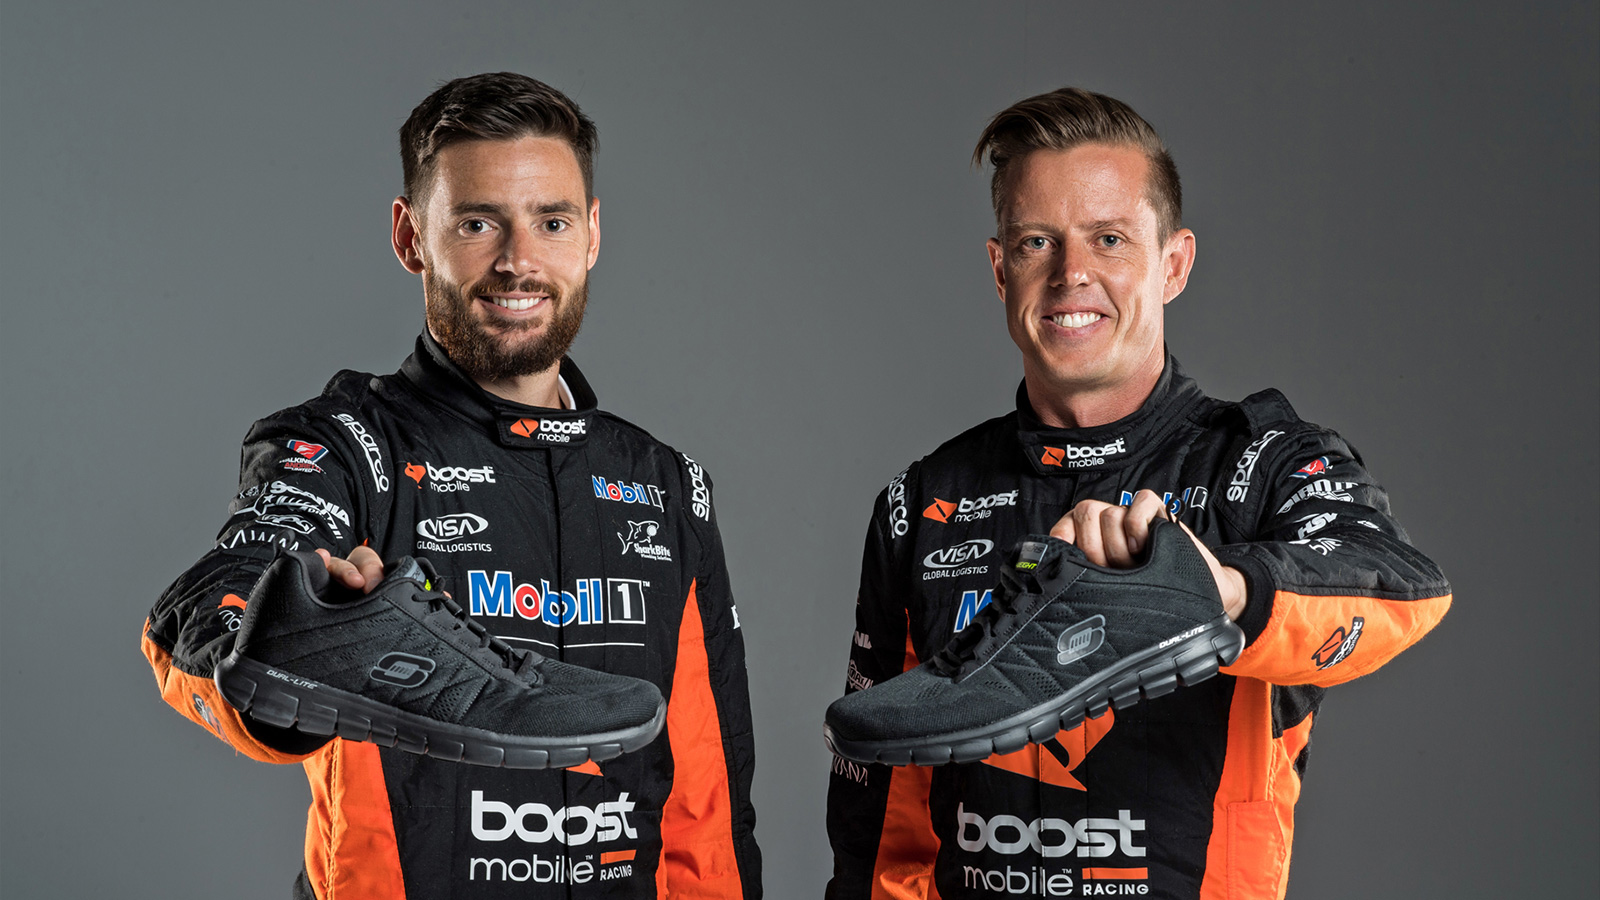 Skechers Join the Team in 2018